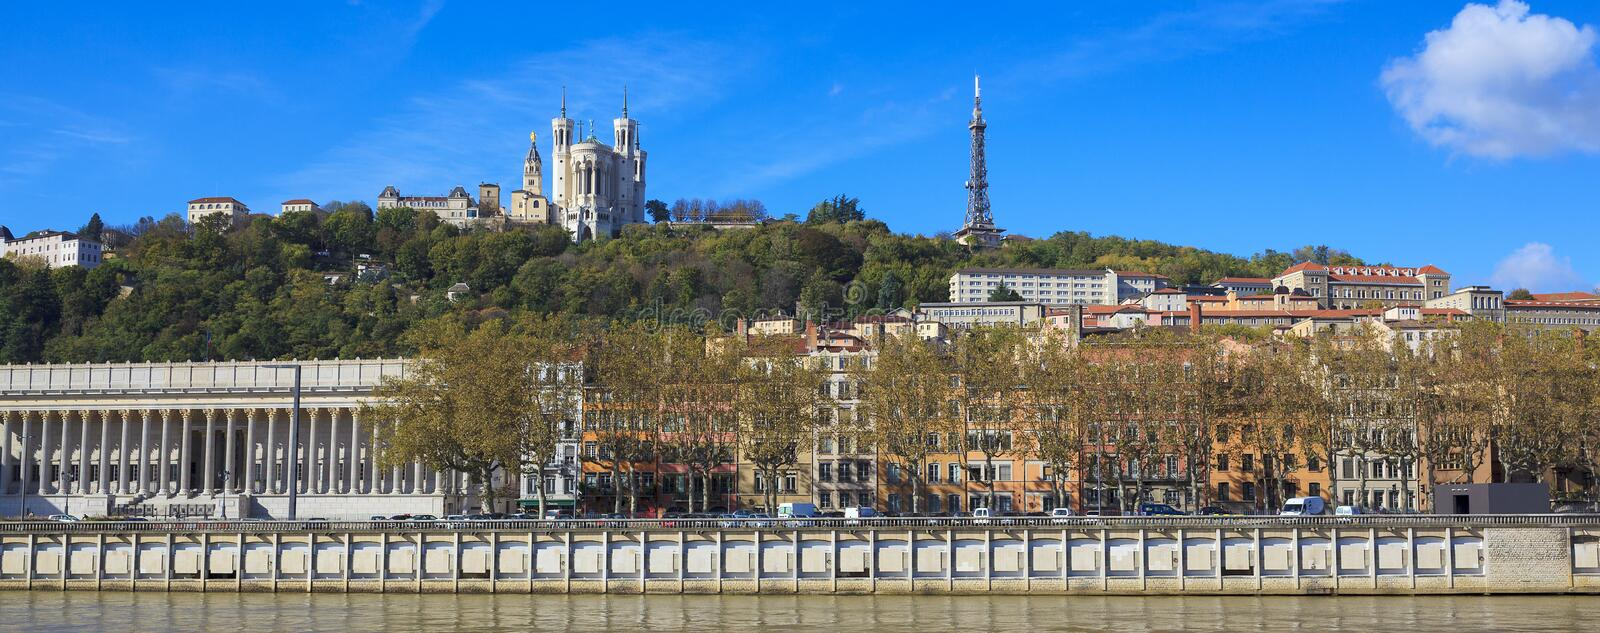 Download Lyon With Basilica And Courthouse Stock Image - Image: 34931881